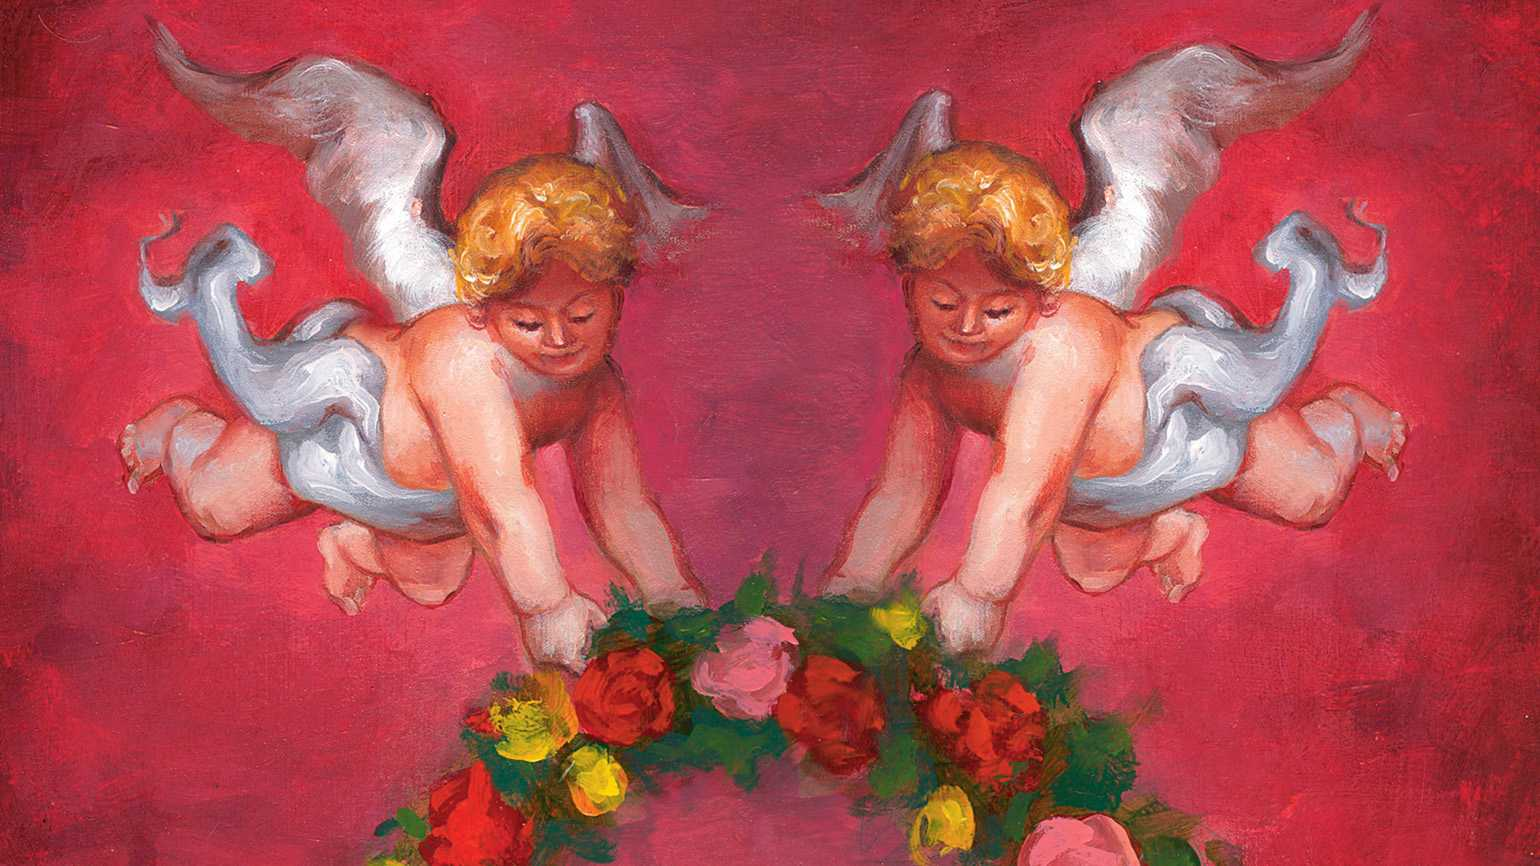 Easter wreath and two guardian angels